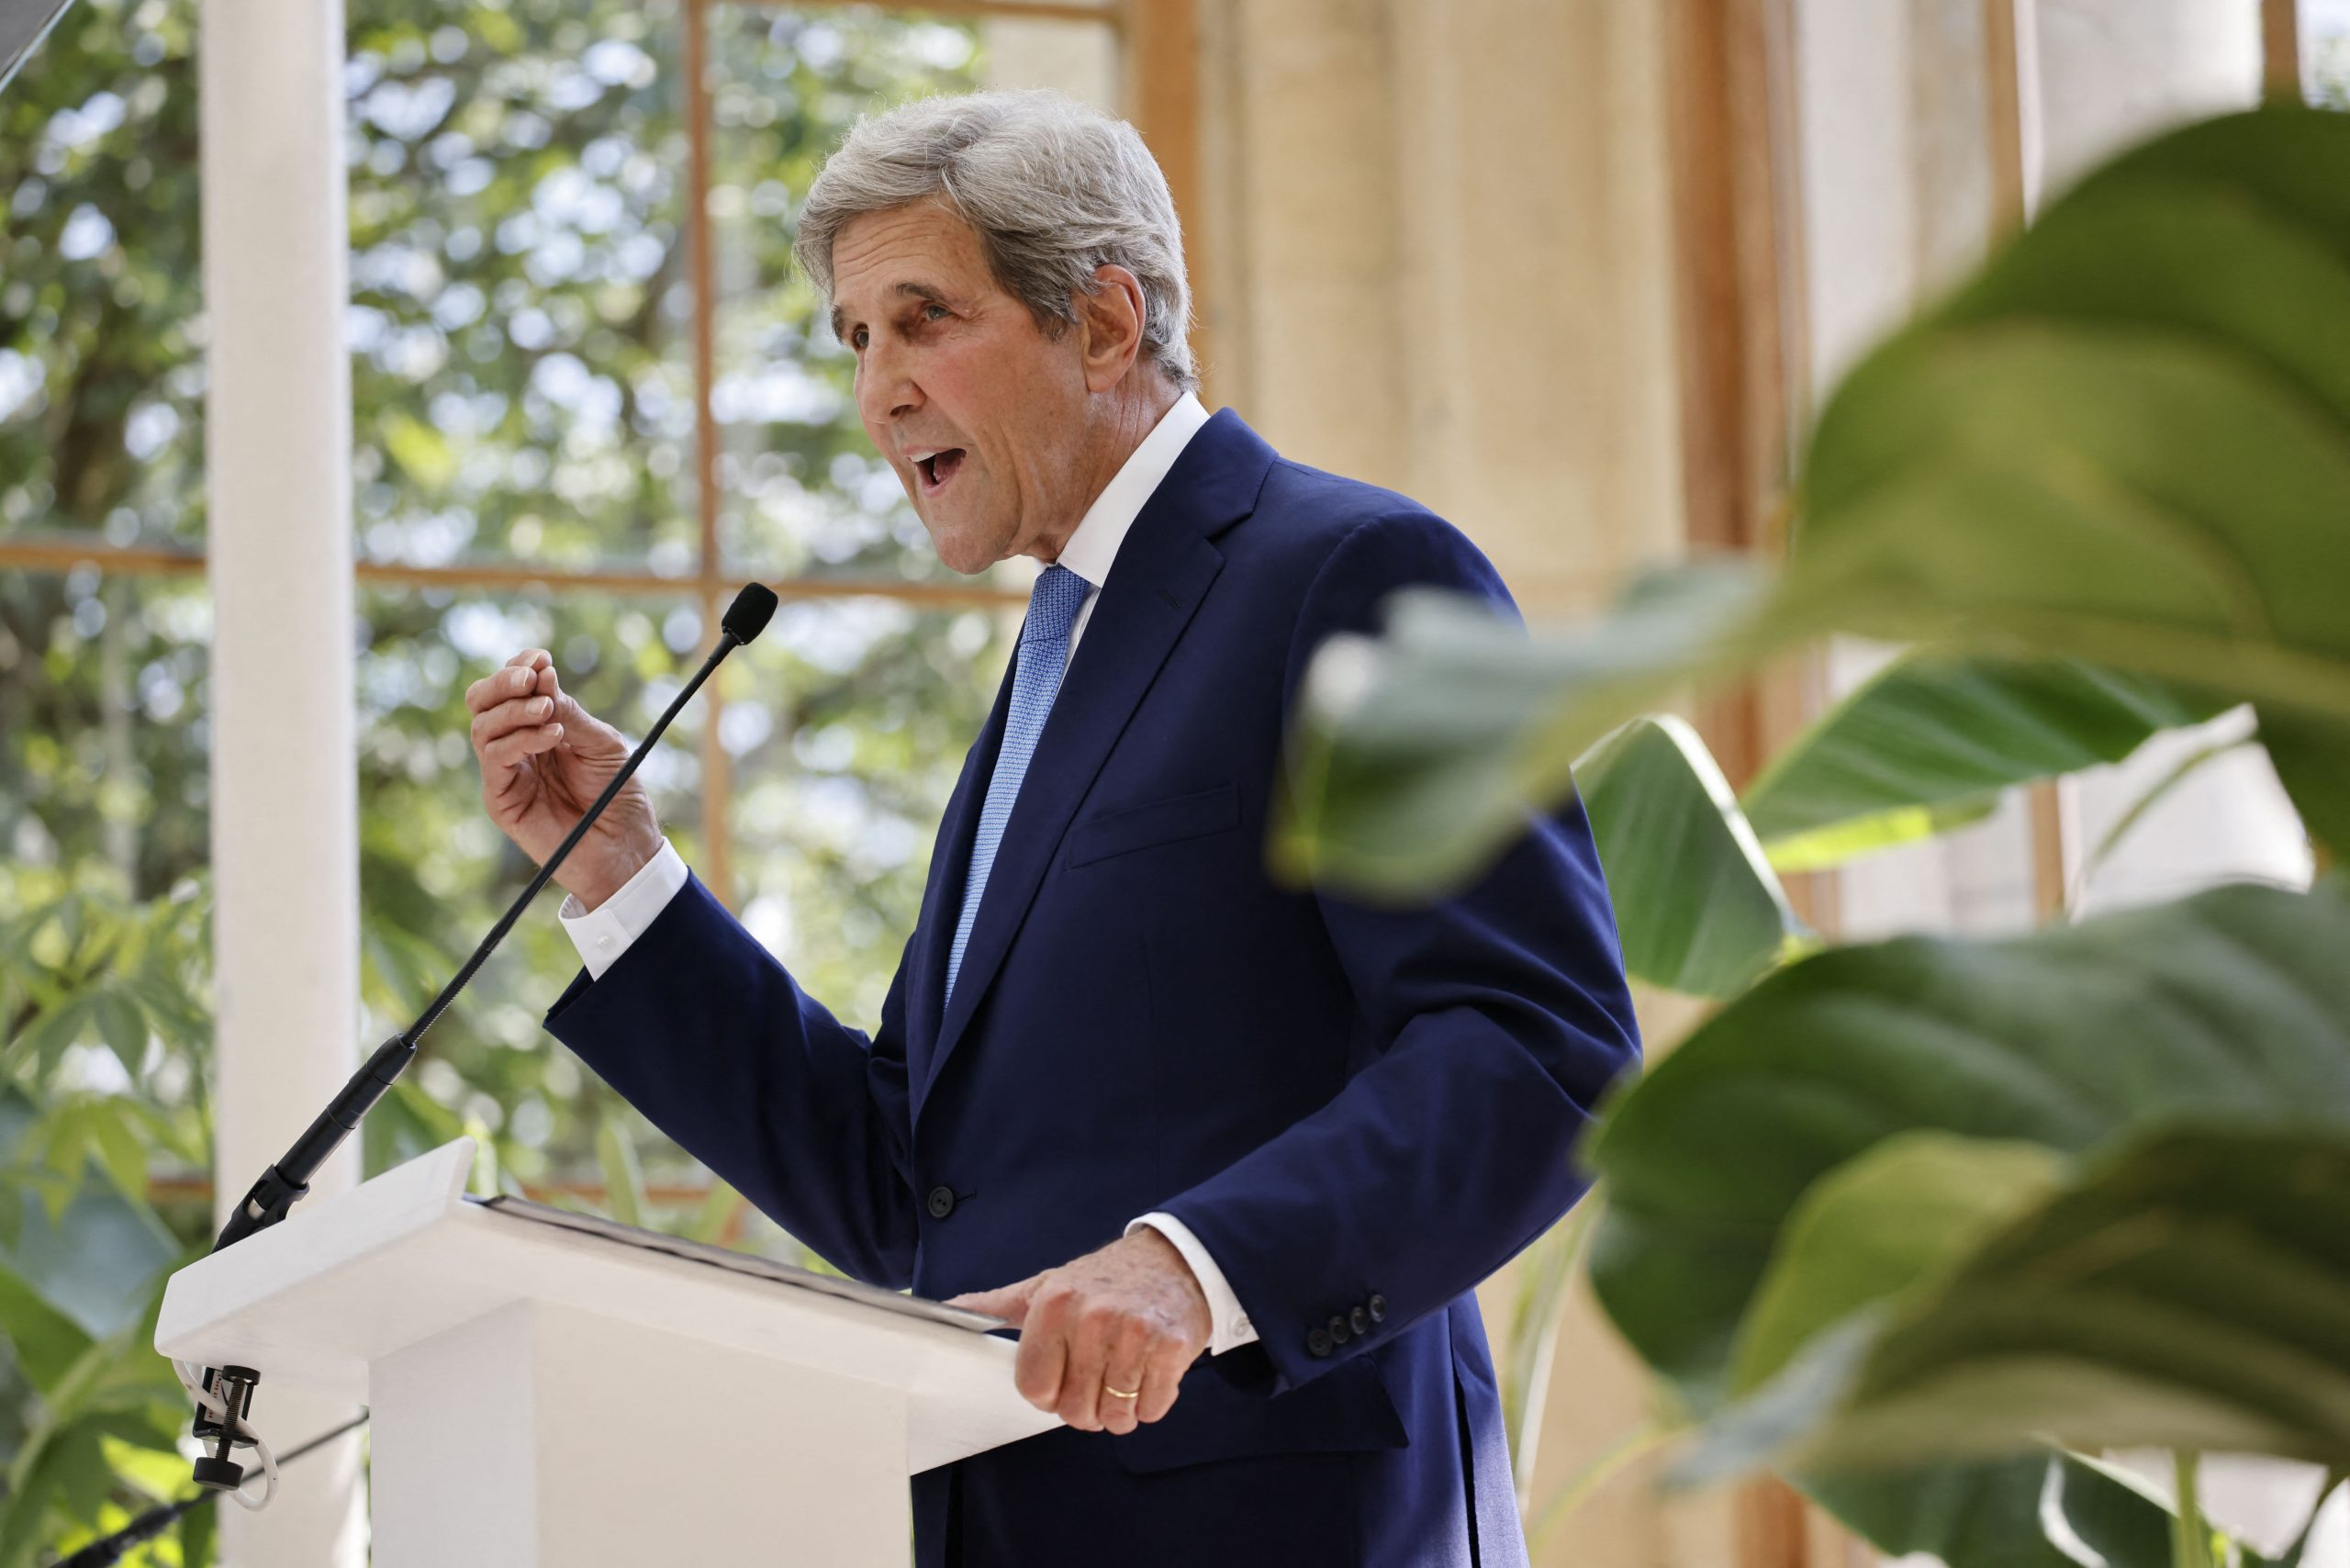 John Kerry calls on China to step up on emissions cuts